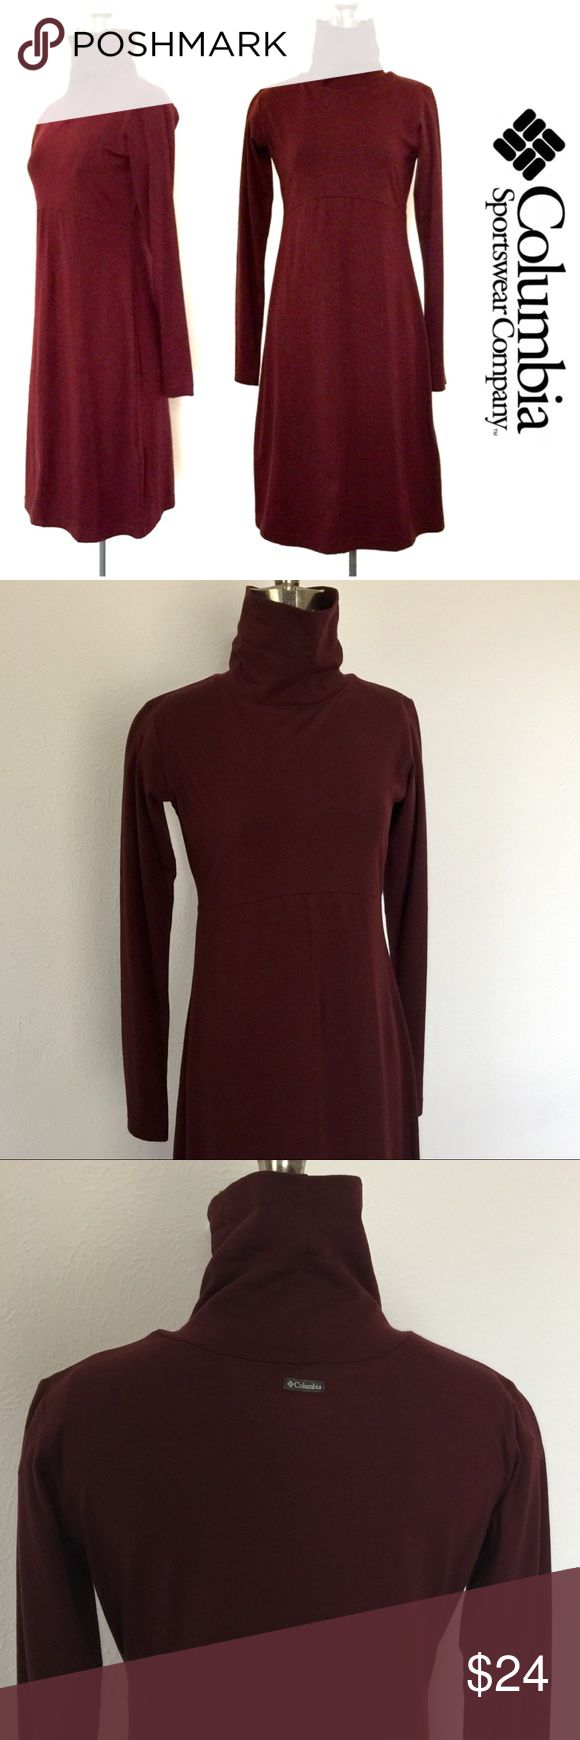 """Columbia Turtleneck Dress Classic Columbia long sleeve turtleneck dress is flattering and comfortable with an empire waist and mid-length that looks great on any figure. Deep maroon. Like new! No flaws. Length: 37"""" • Bust: 16"""" • Waist: 14"""" 95% Cotton / 5% Elastane Columbia Dresses Long Sleeve"""